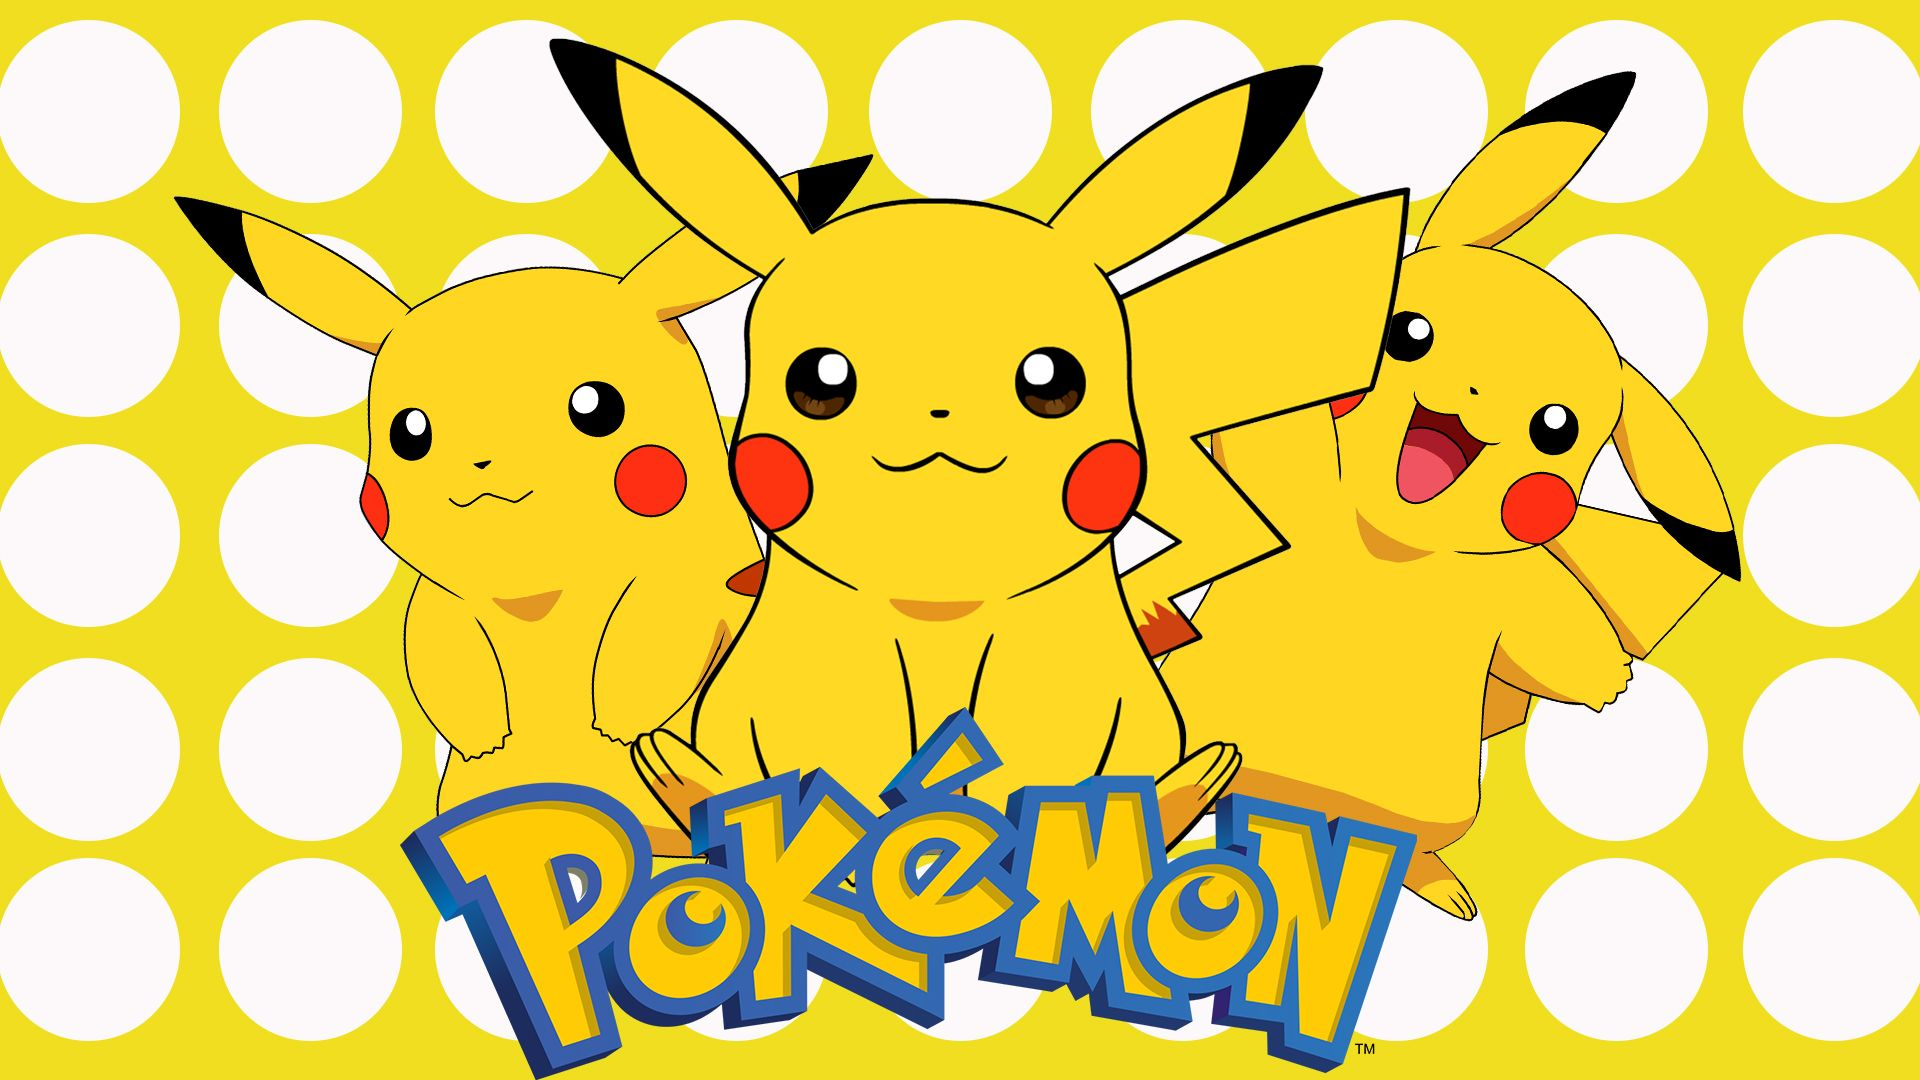 Pikachu Pokemon Wallpaper HD 1373